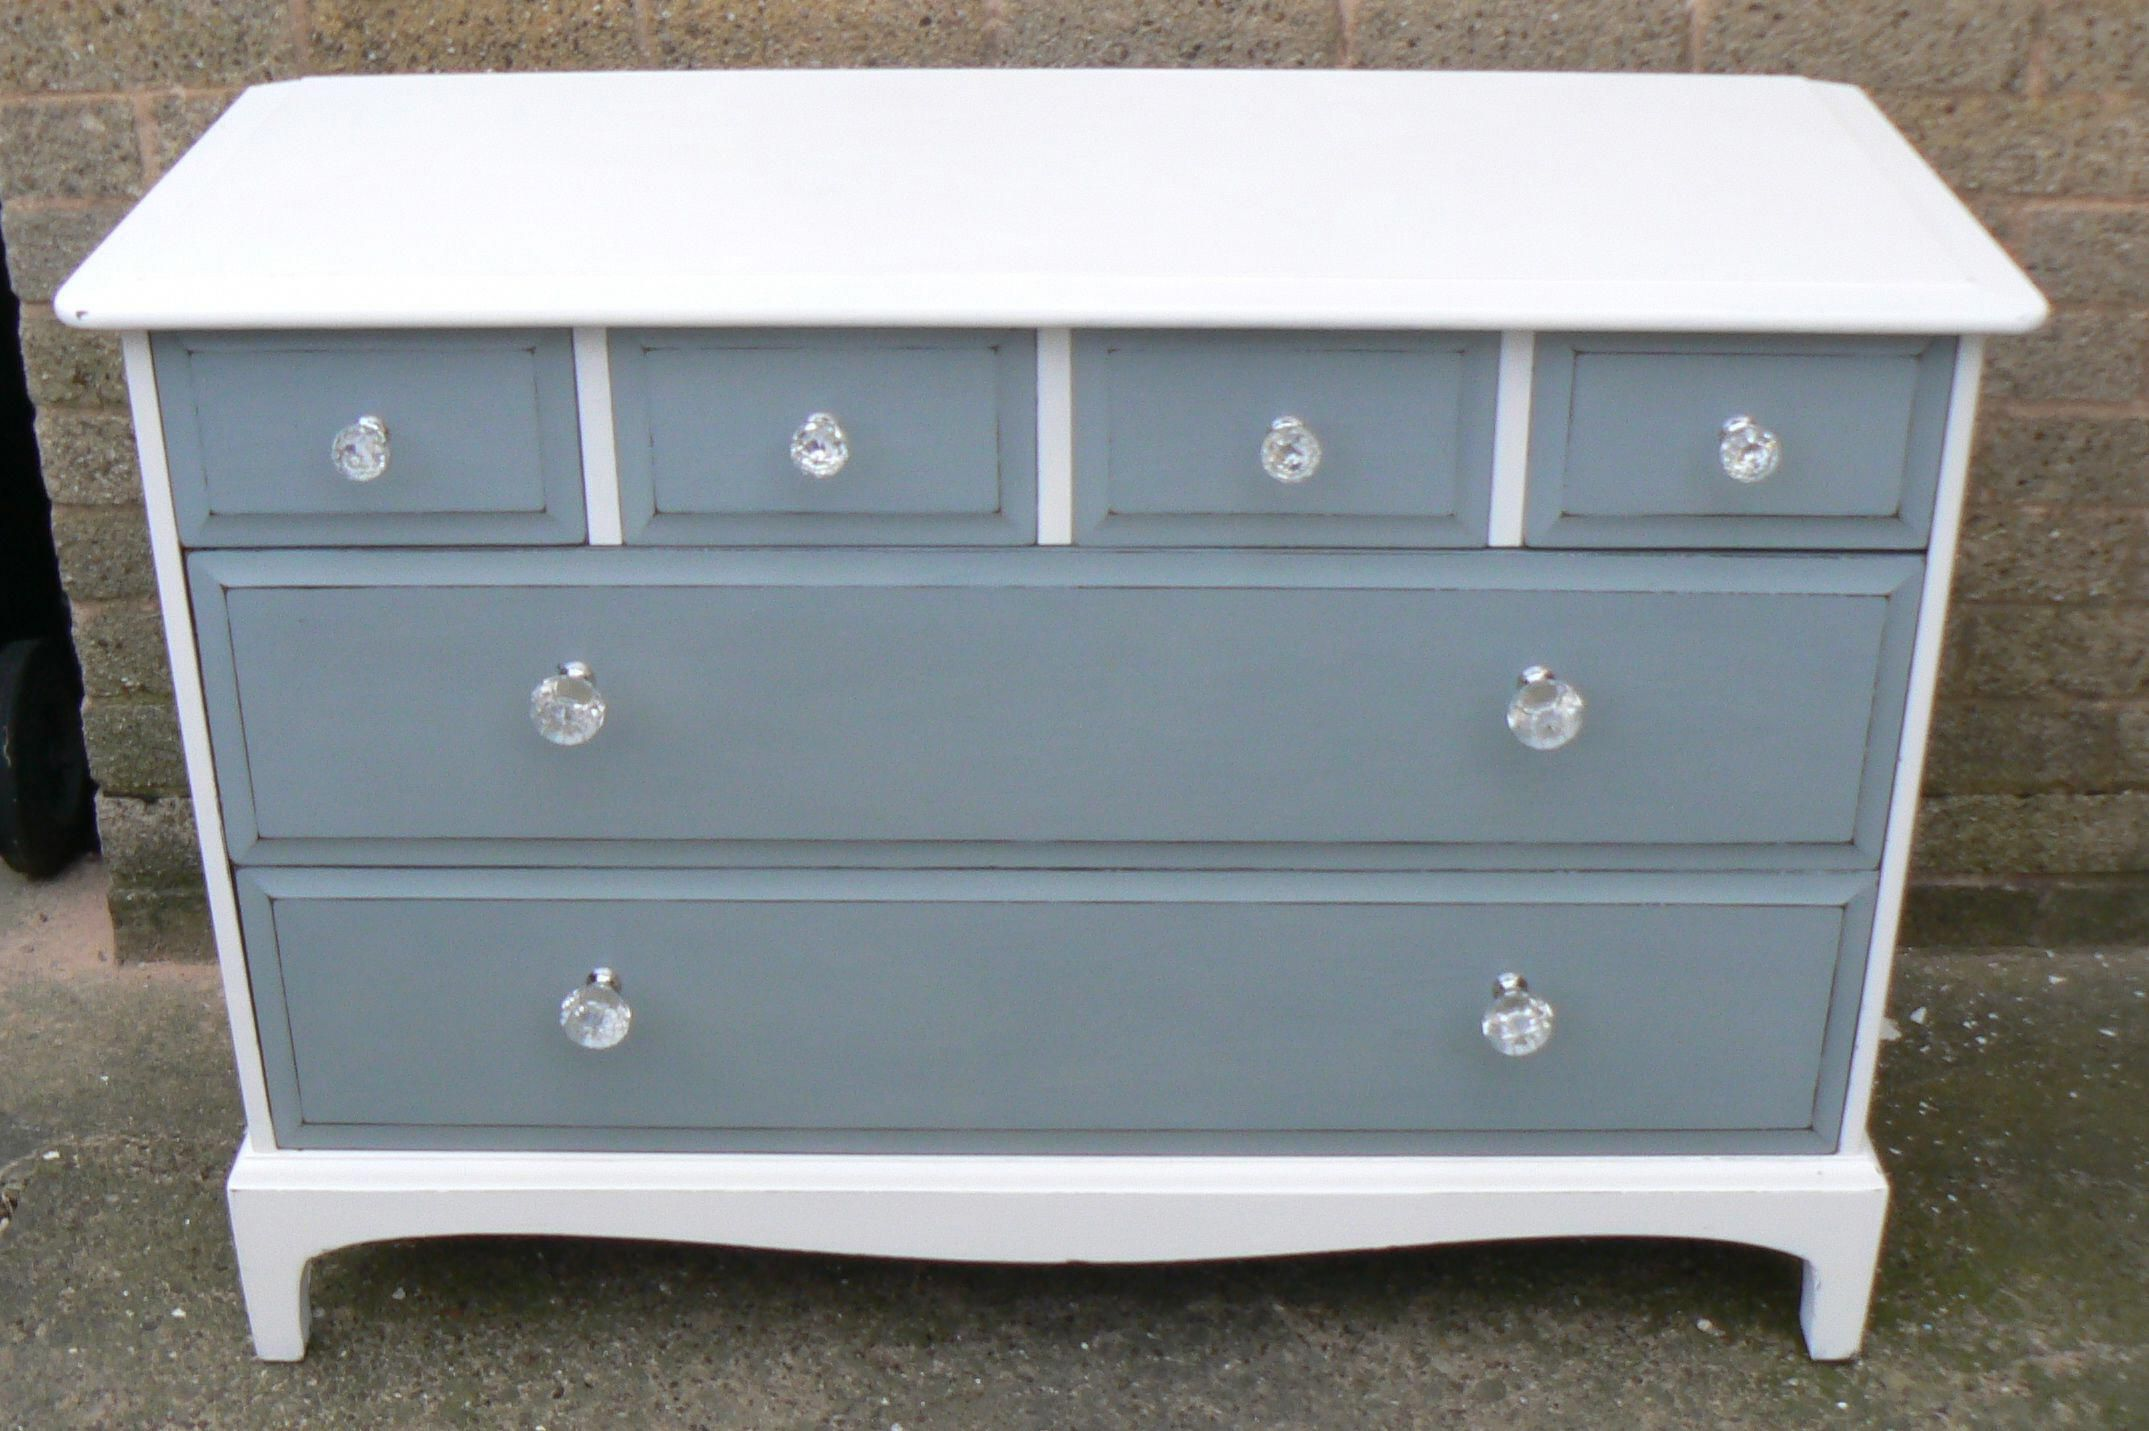 Classic Stag Drawers Painted In Autentico Paint The Body Has Been Painted In Autentico Ice Cream Classic Bathroom Furniture Bathroom Furniture Stag Furniture